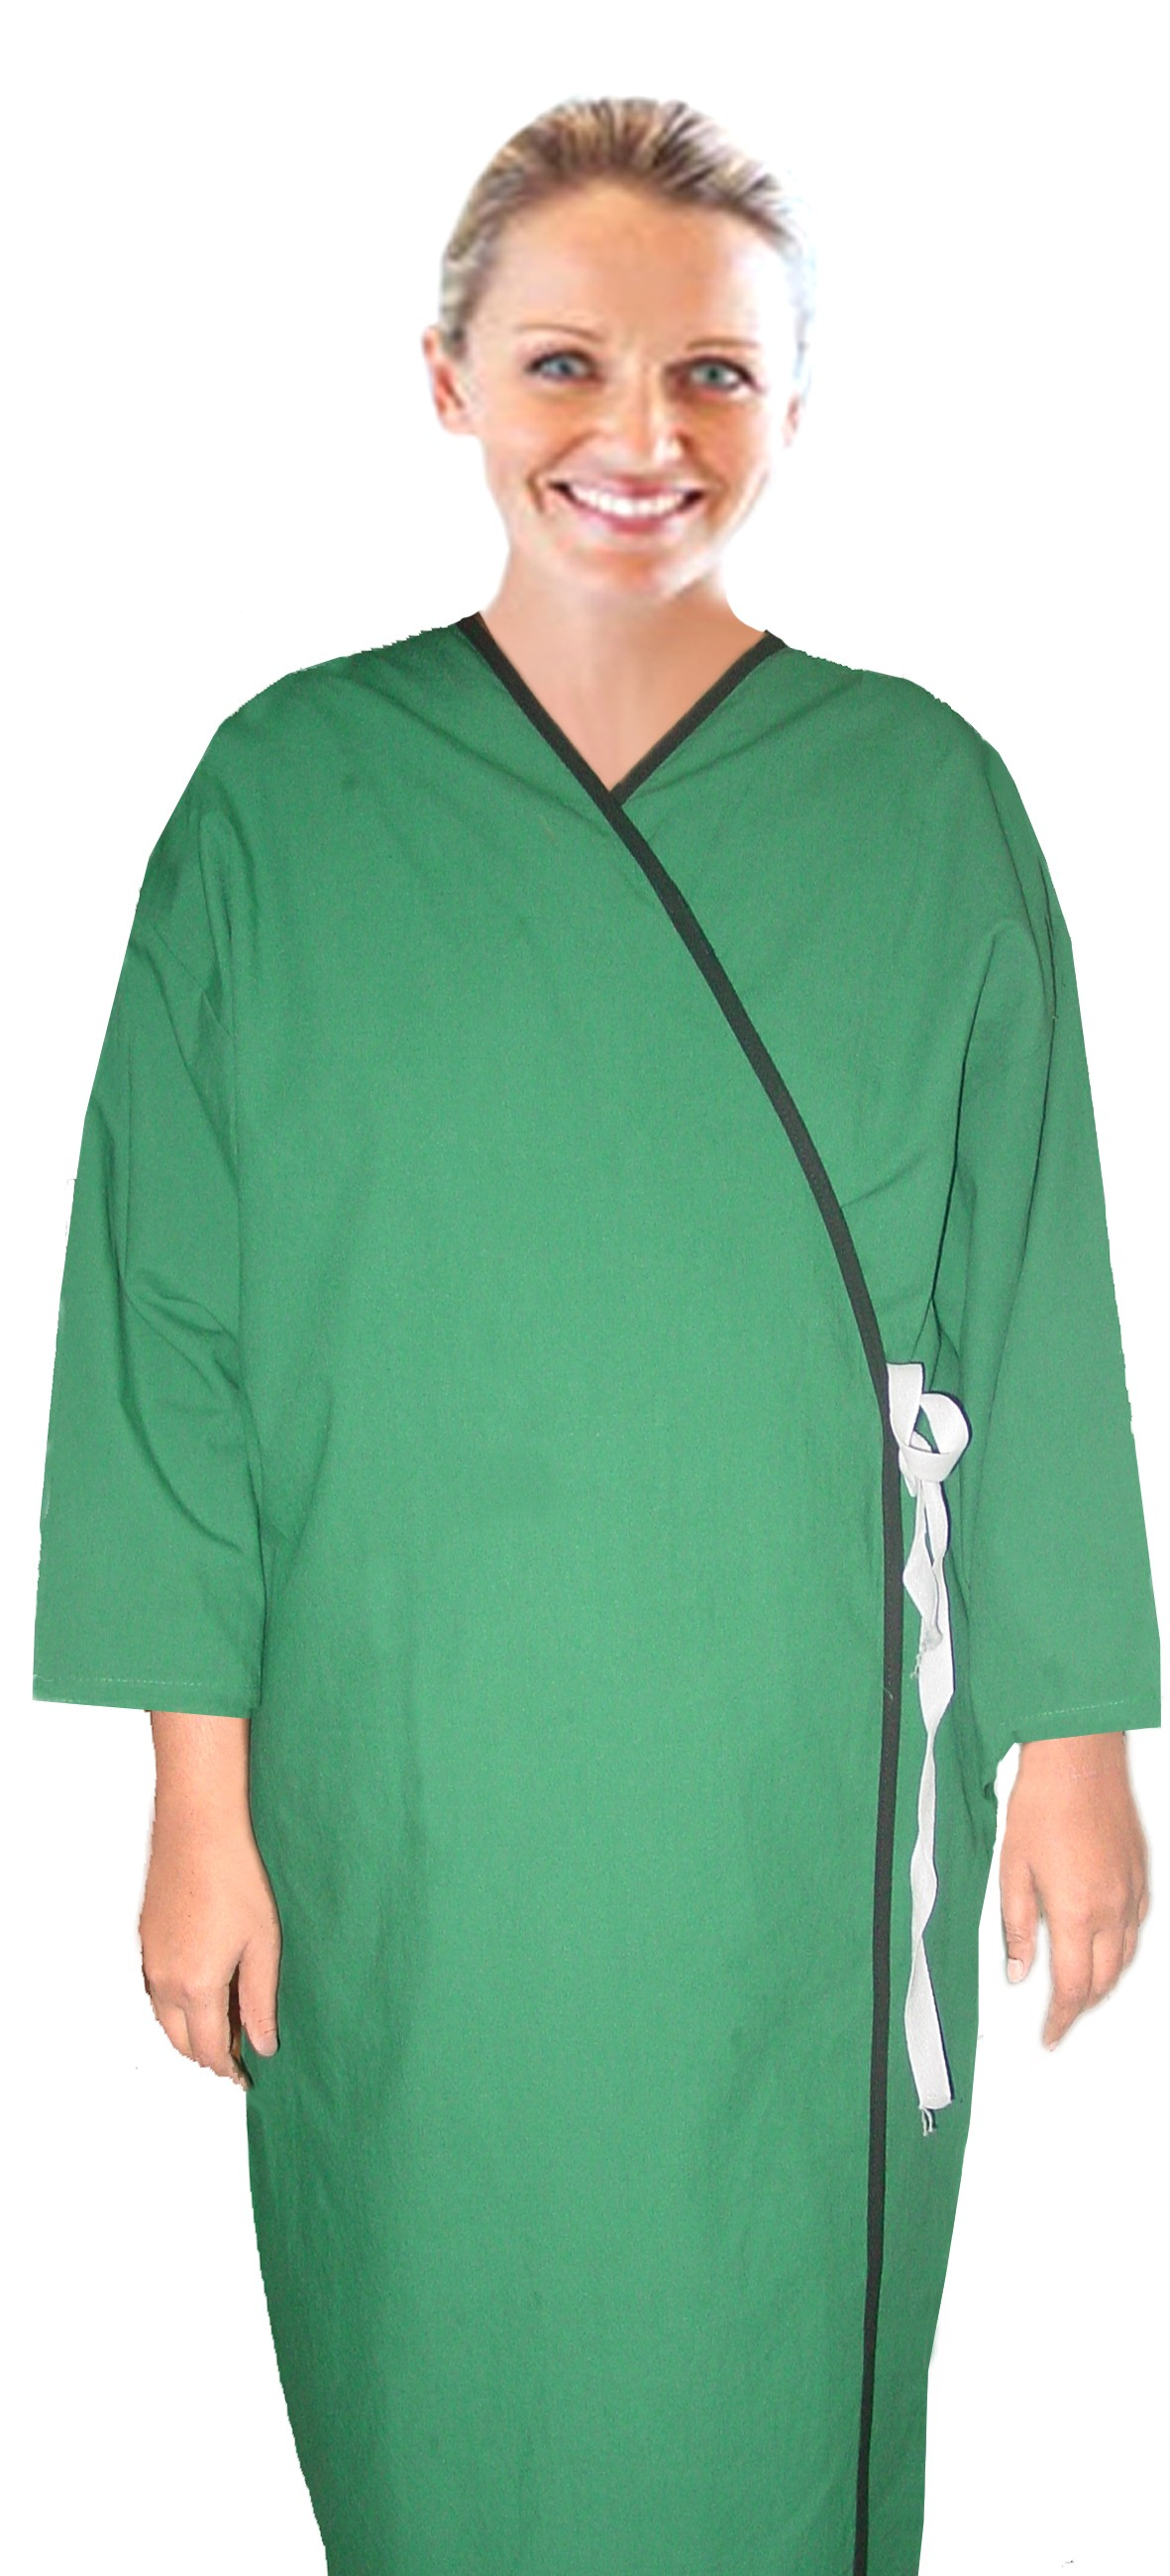 NEW STYLE PATIENT GOWN SOLID FULL SLEEVE WITH CONTRAST PIPING